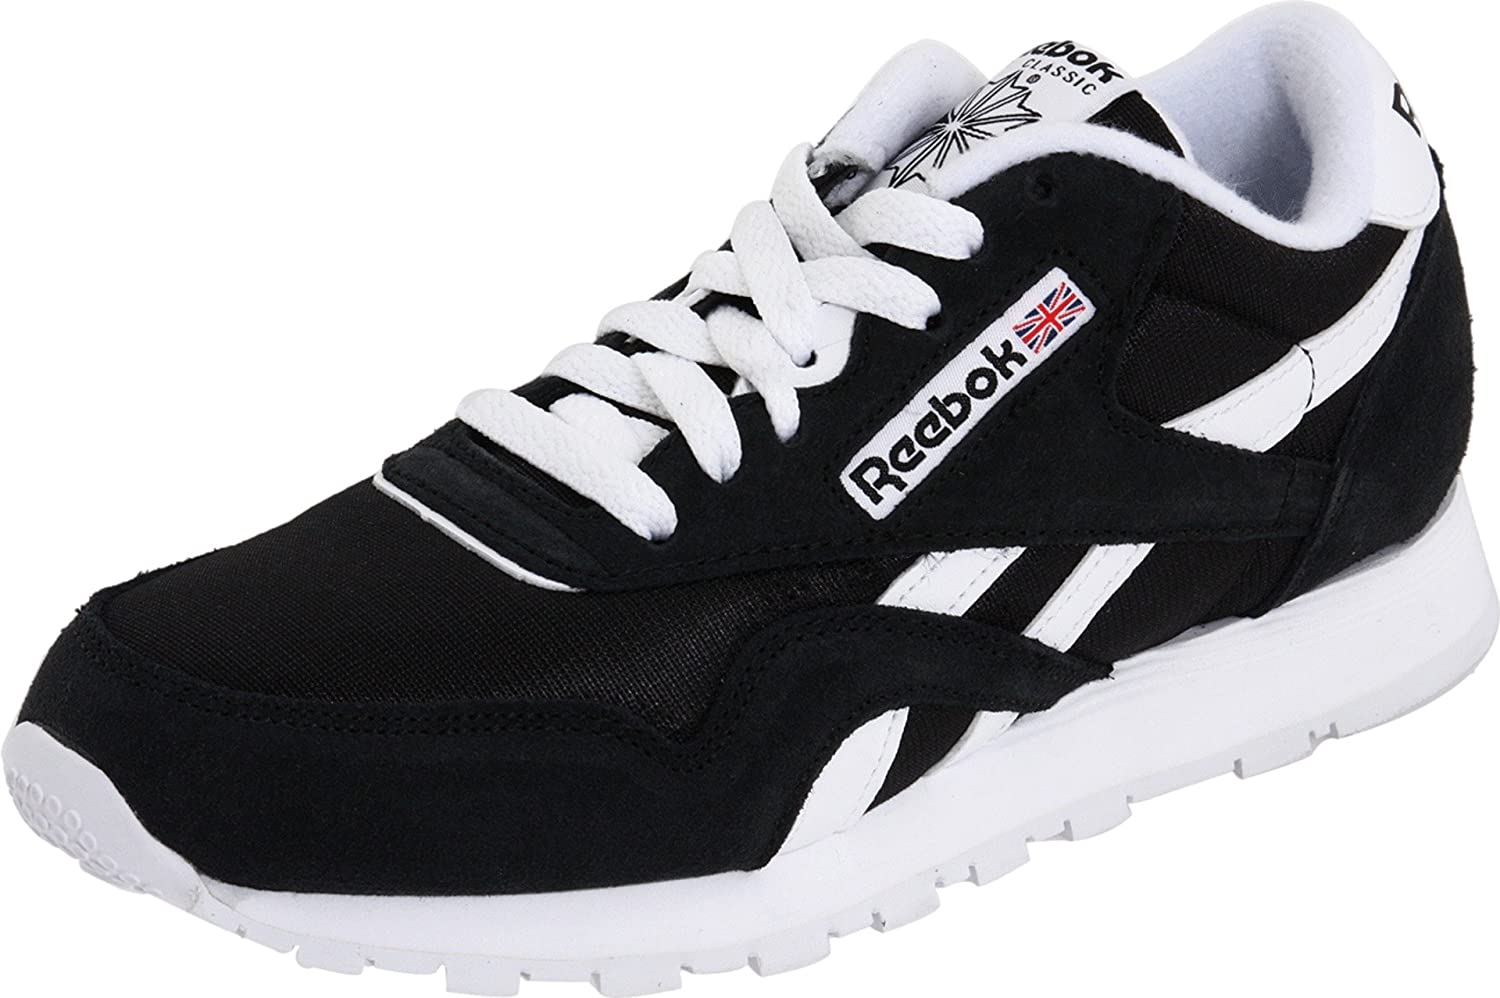 best service 490c6 f088f Amazon.com | Reebok Kids' Classic Nylon Fashion Sneaker | Sneakers